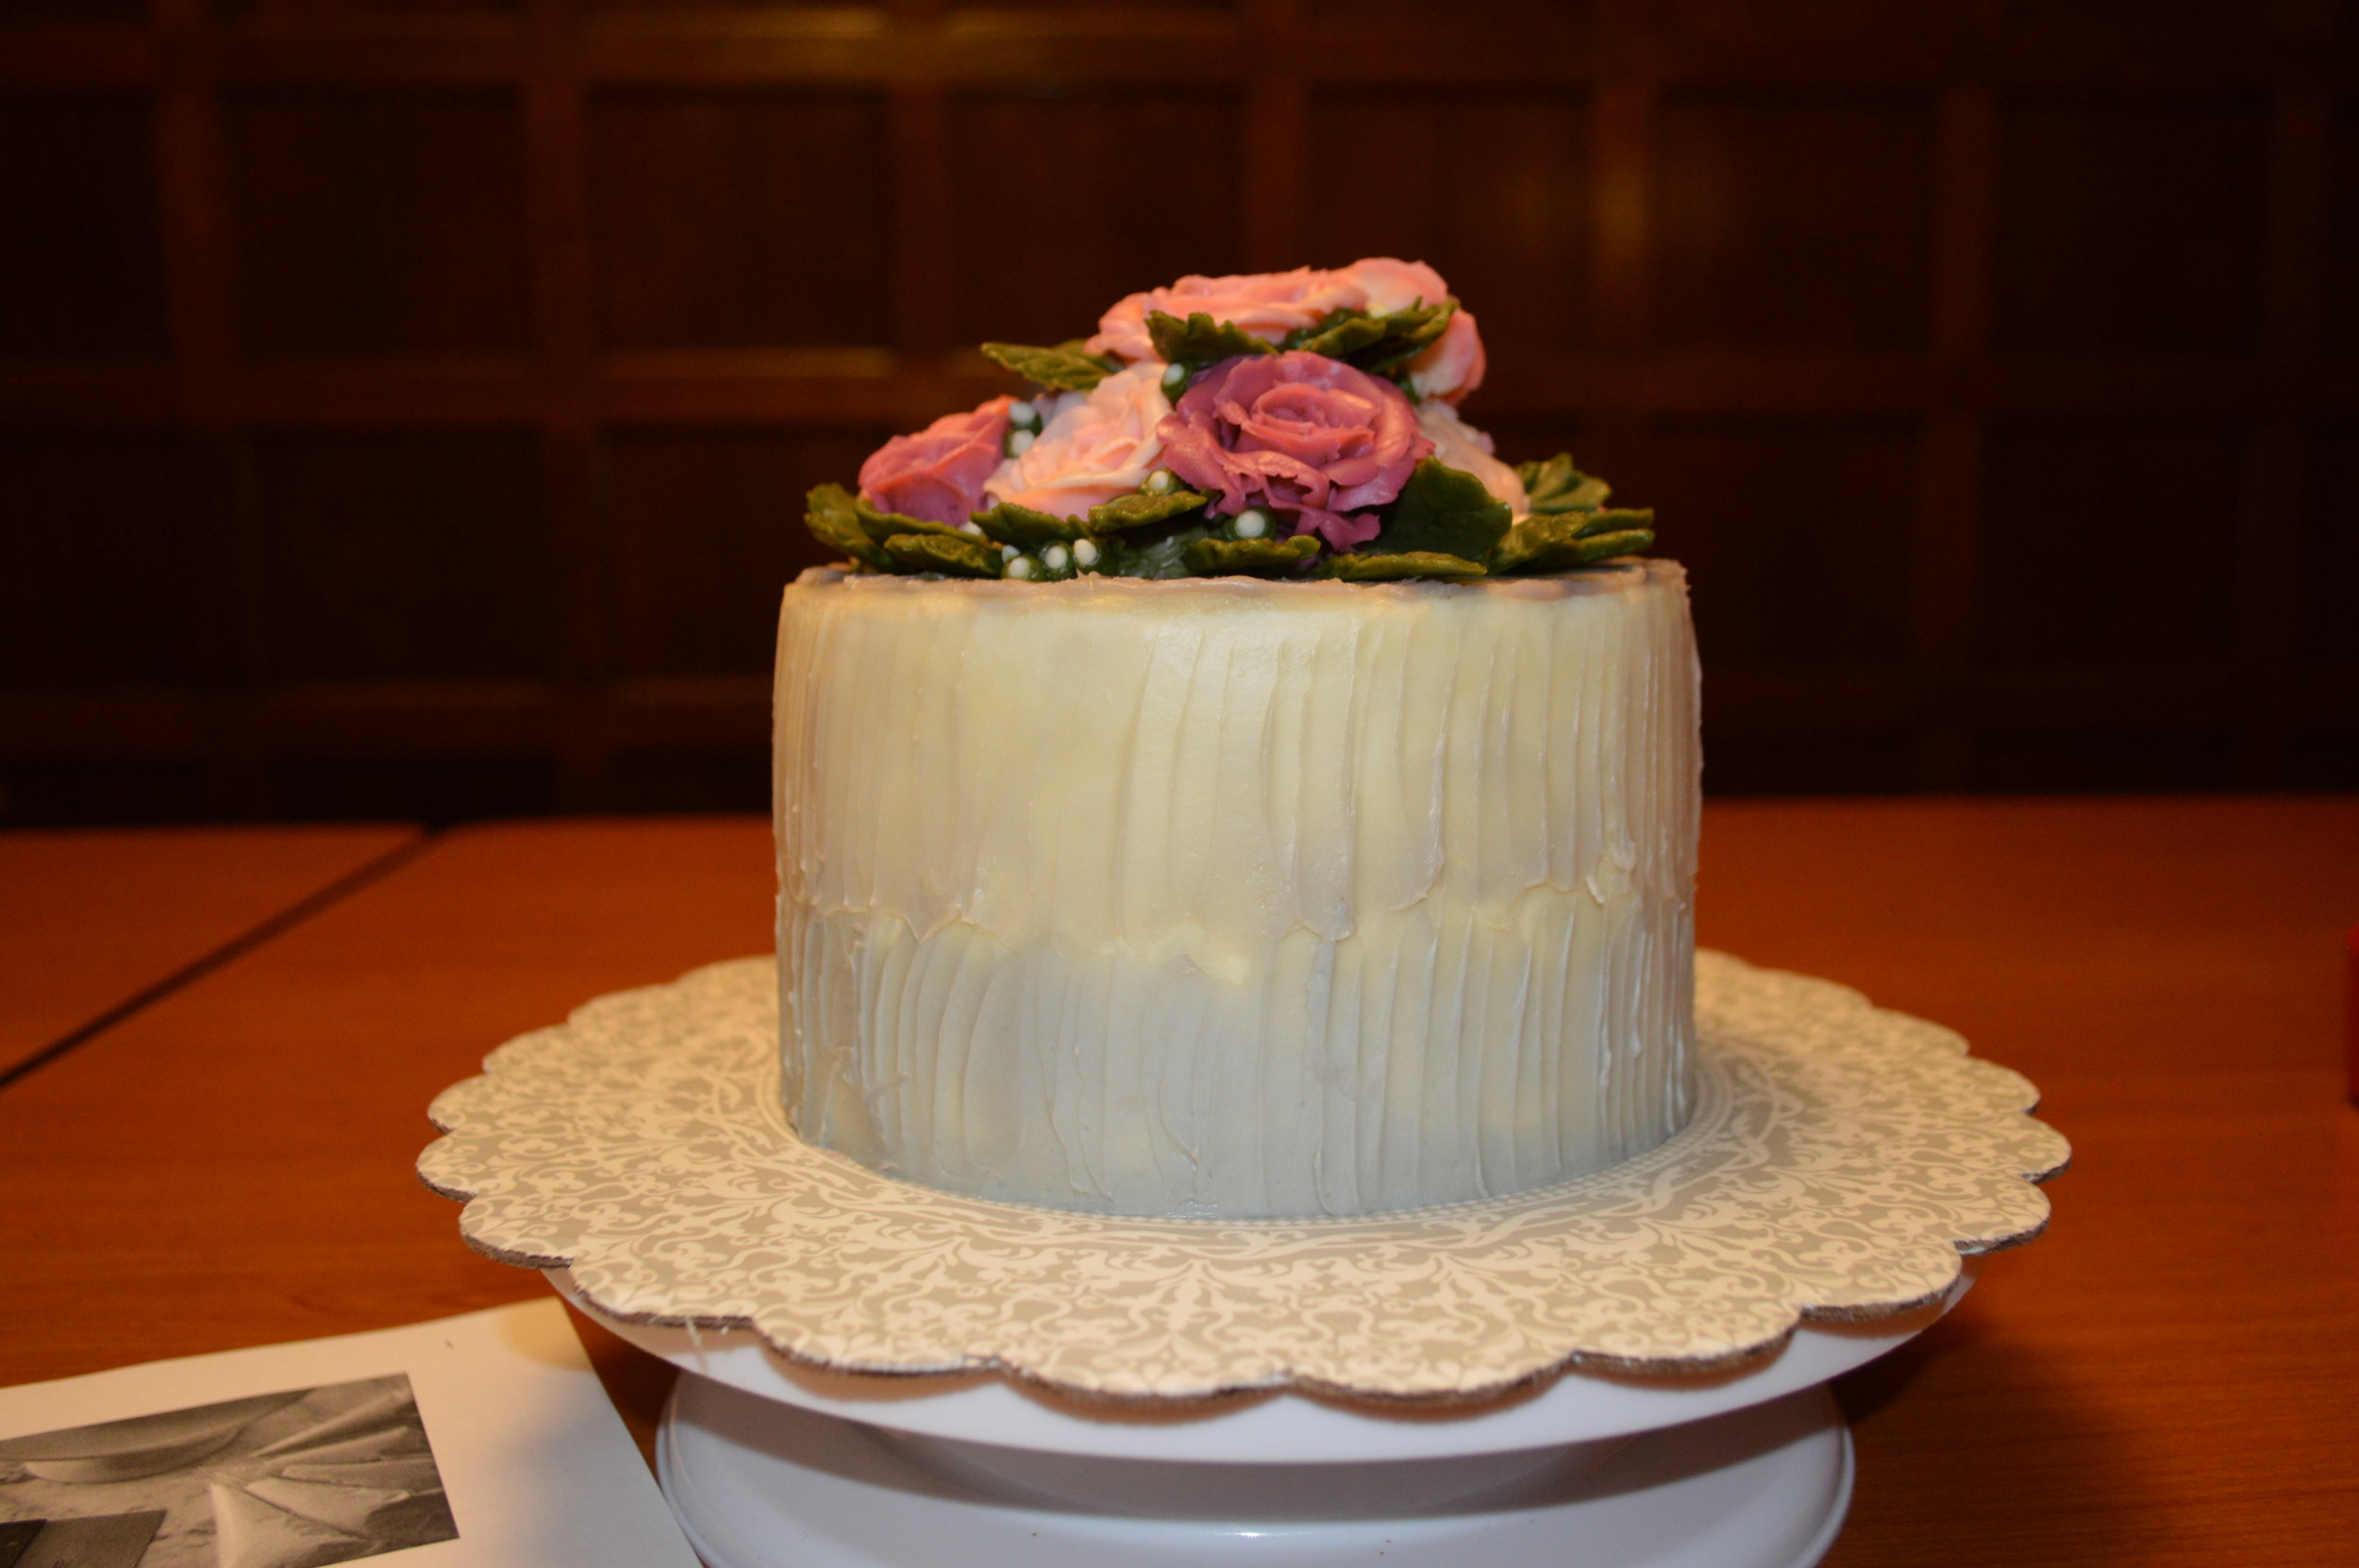 1st Place - Trang Nguyen, CCAC Culinary - Chocolate Carrot Cake with Italian Buttercream